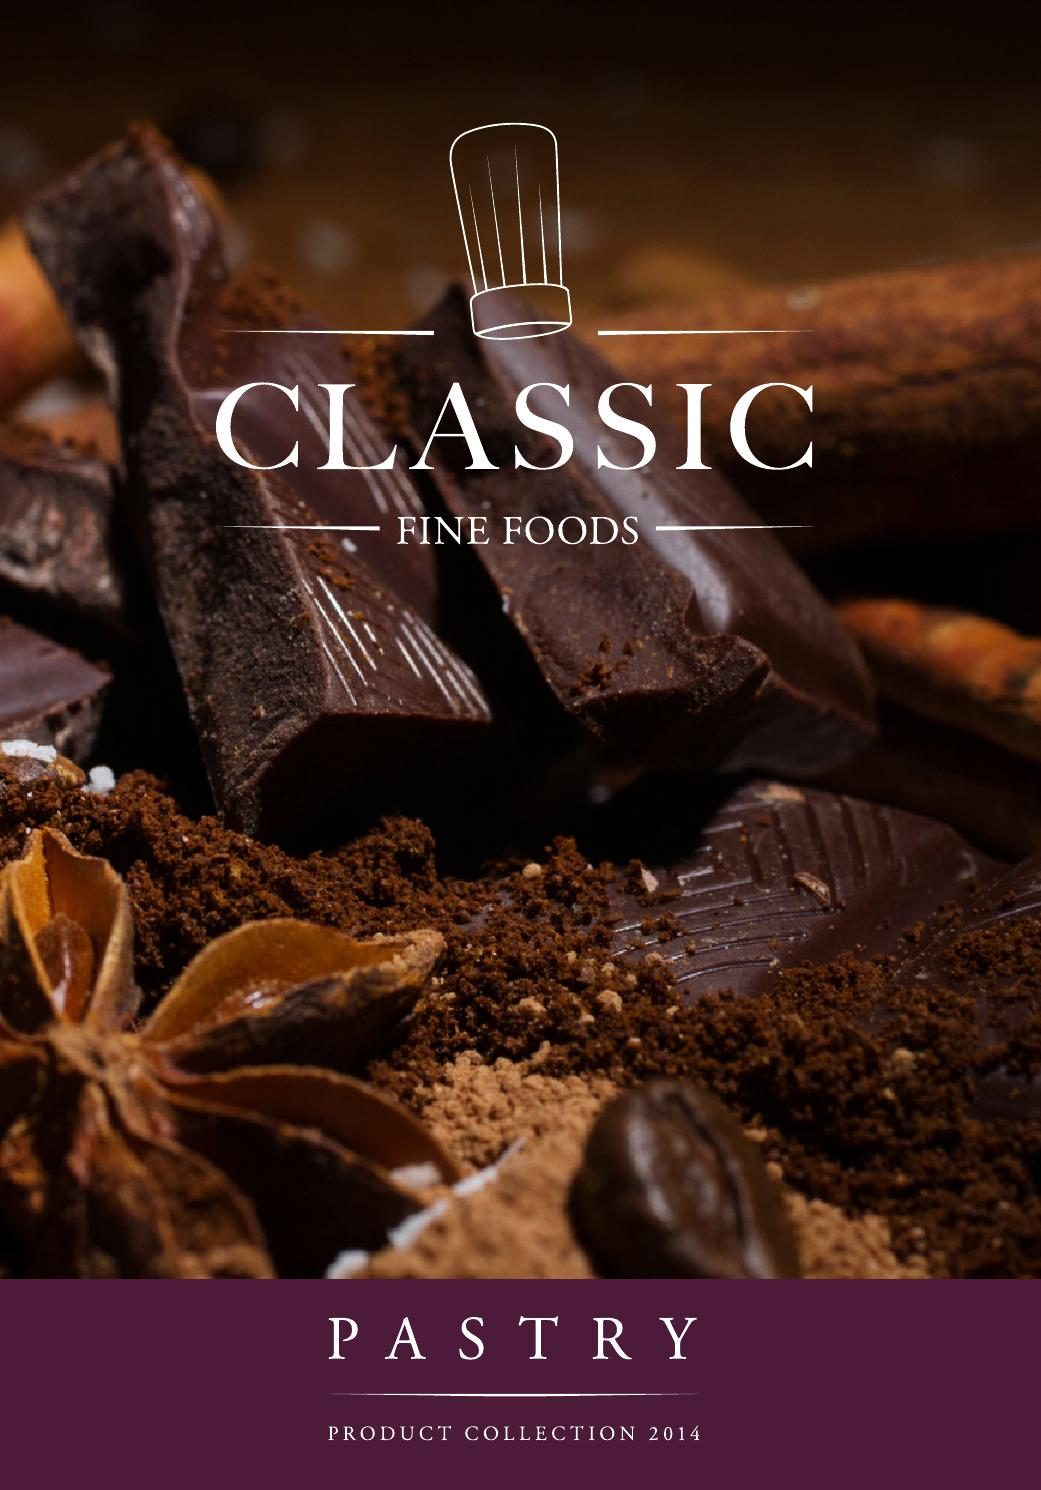 Classic Fine Foods Product Collection 2014 Pastry By Red Velvet Nougat Cake 40x60cm Issuu